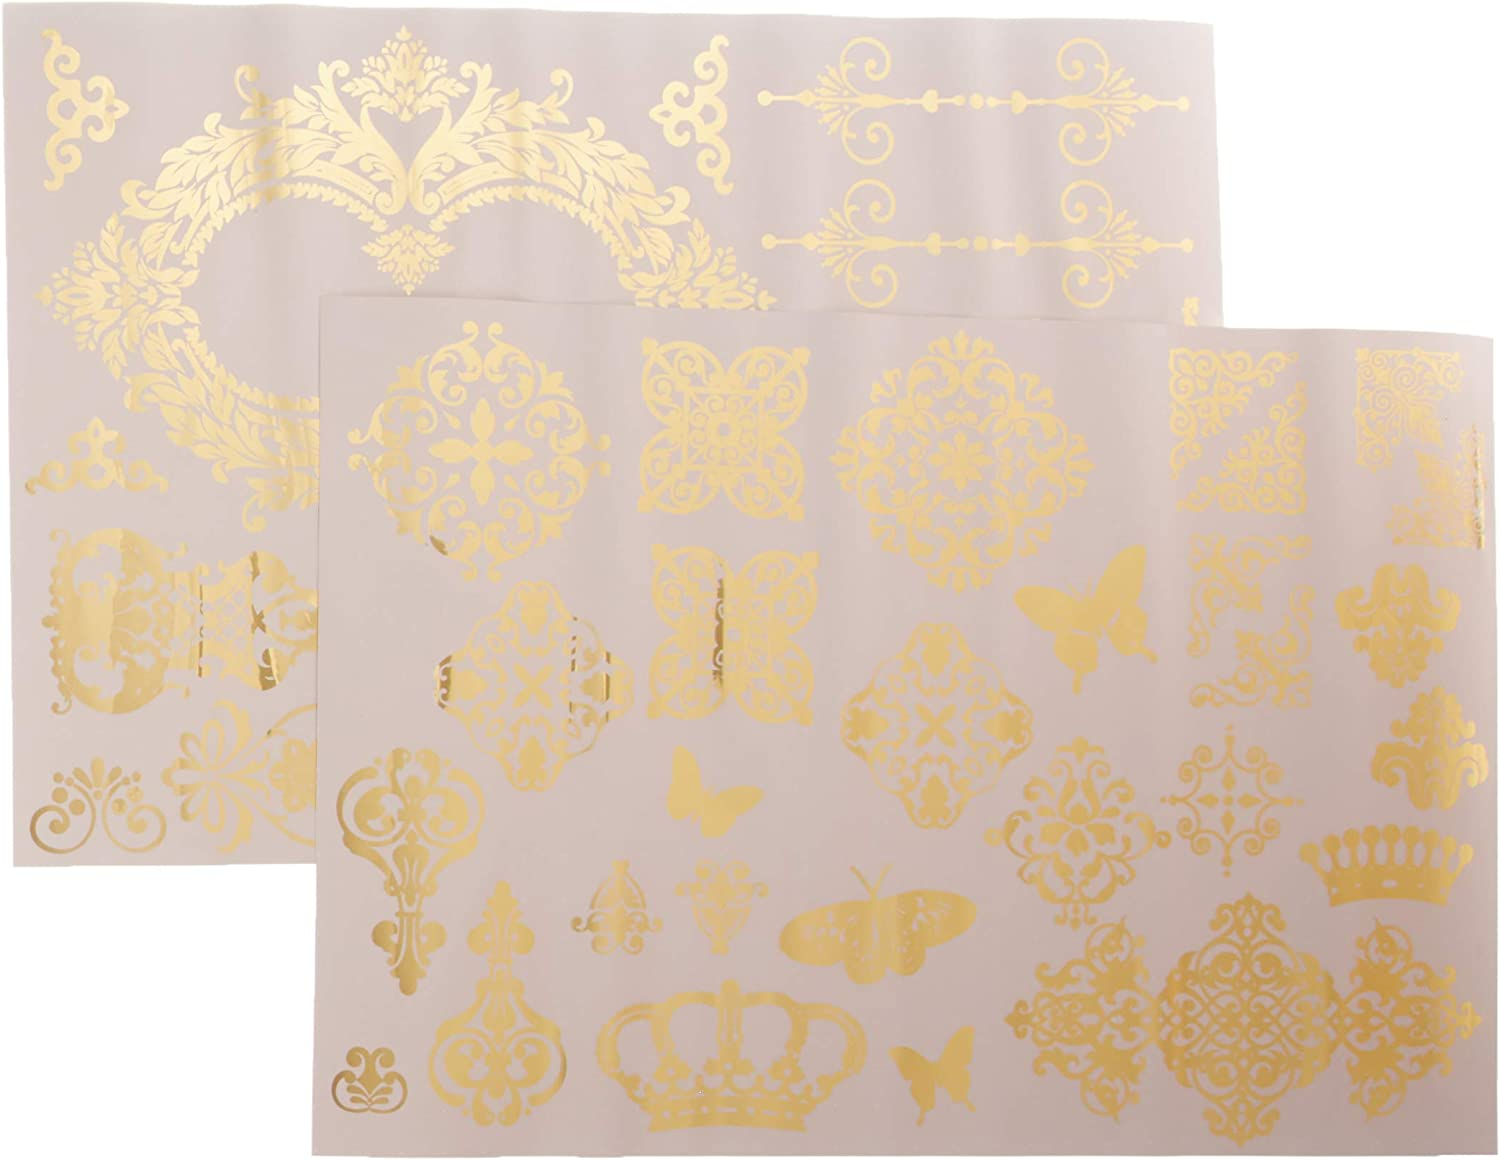 Prima Marketing Inc Gold Transfer - Gilded Baroque Scrollwork, Mixed